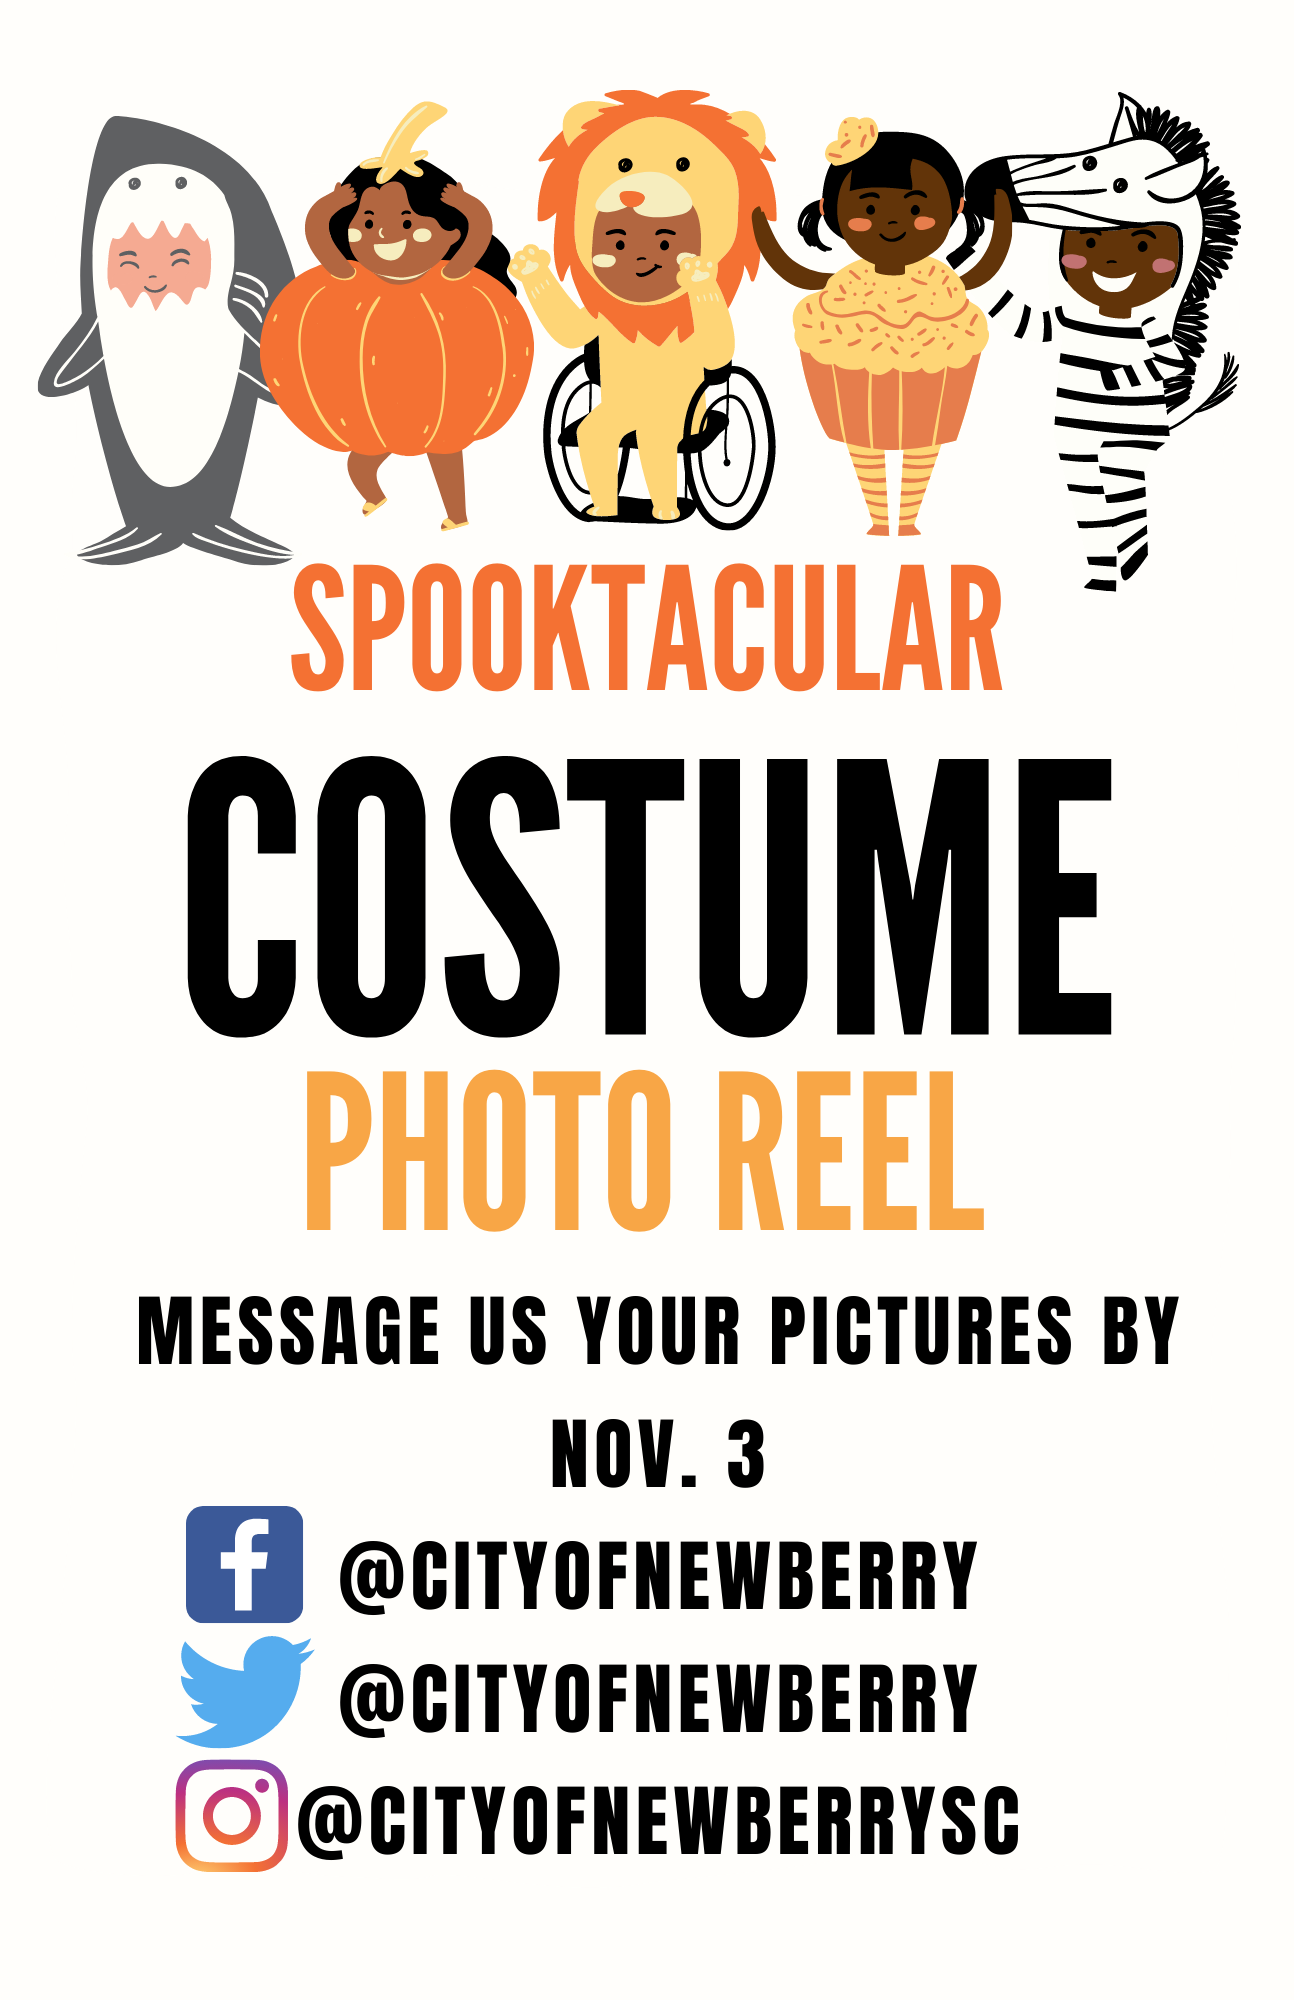 Spooktacular Costume Photo Reel. Message us your pictures by Nov. 3. Facebook  and Twitter @CityofNewberry, Instagram @CityofnewberrySC